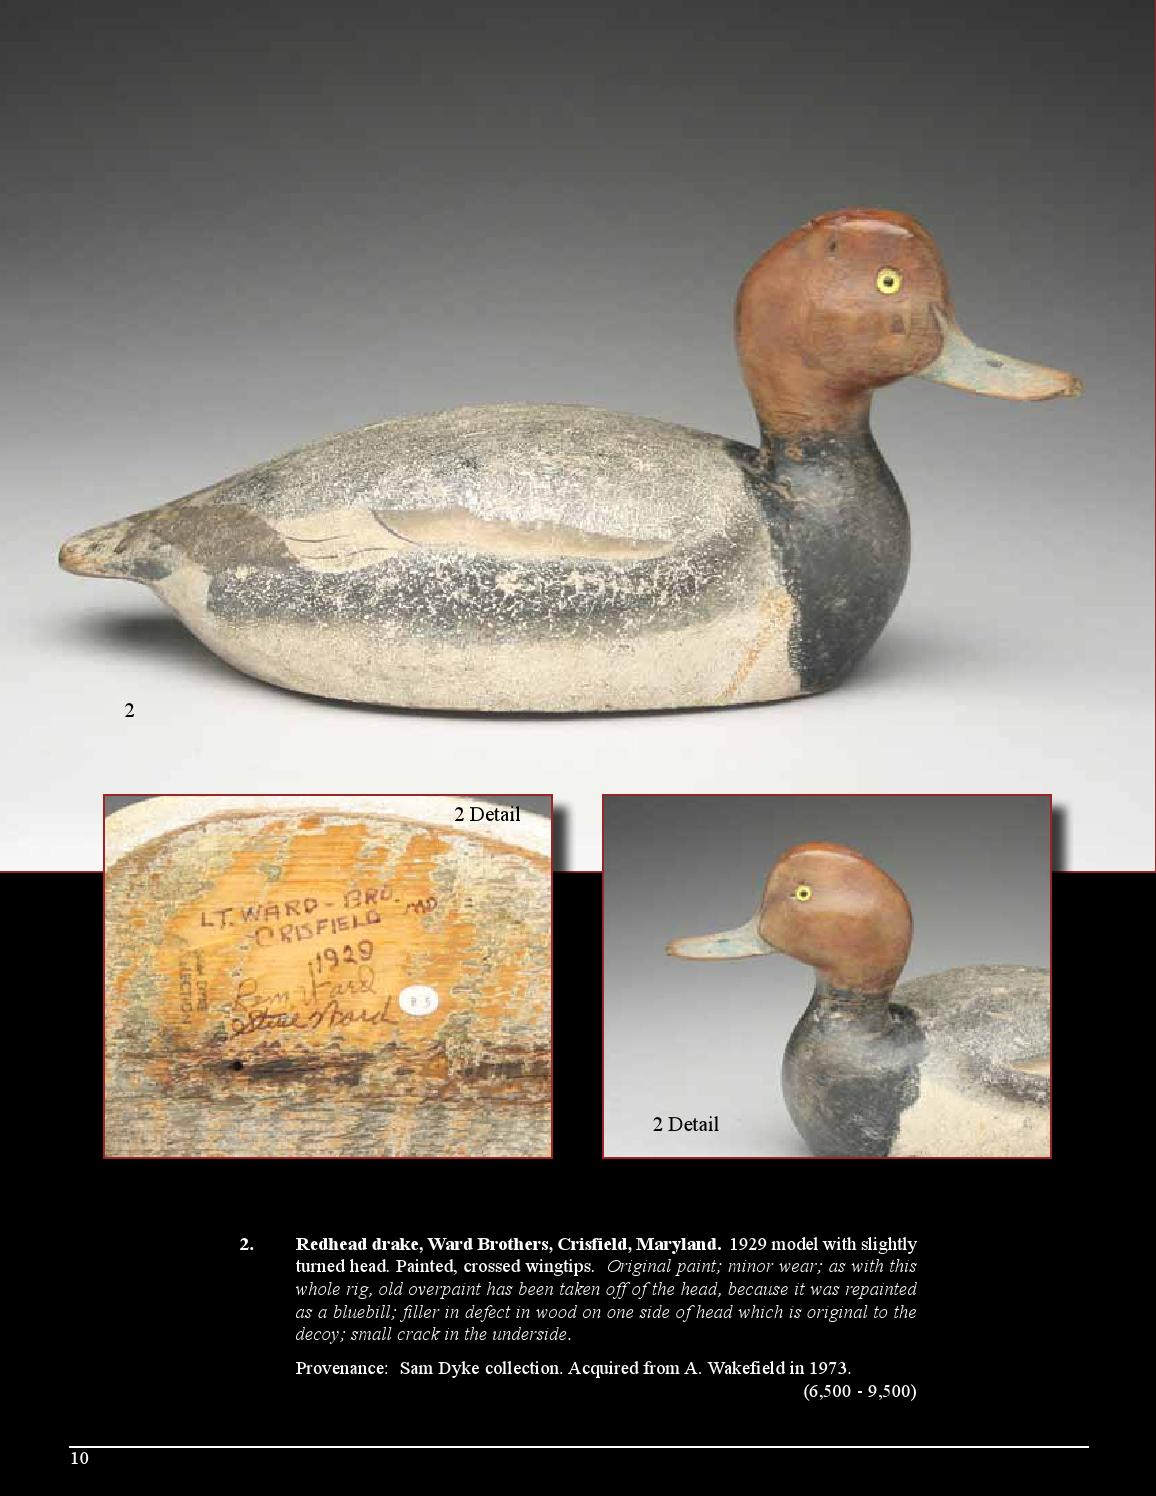 North American Decoys at Auction - November 11 & 12, 2015 by